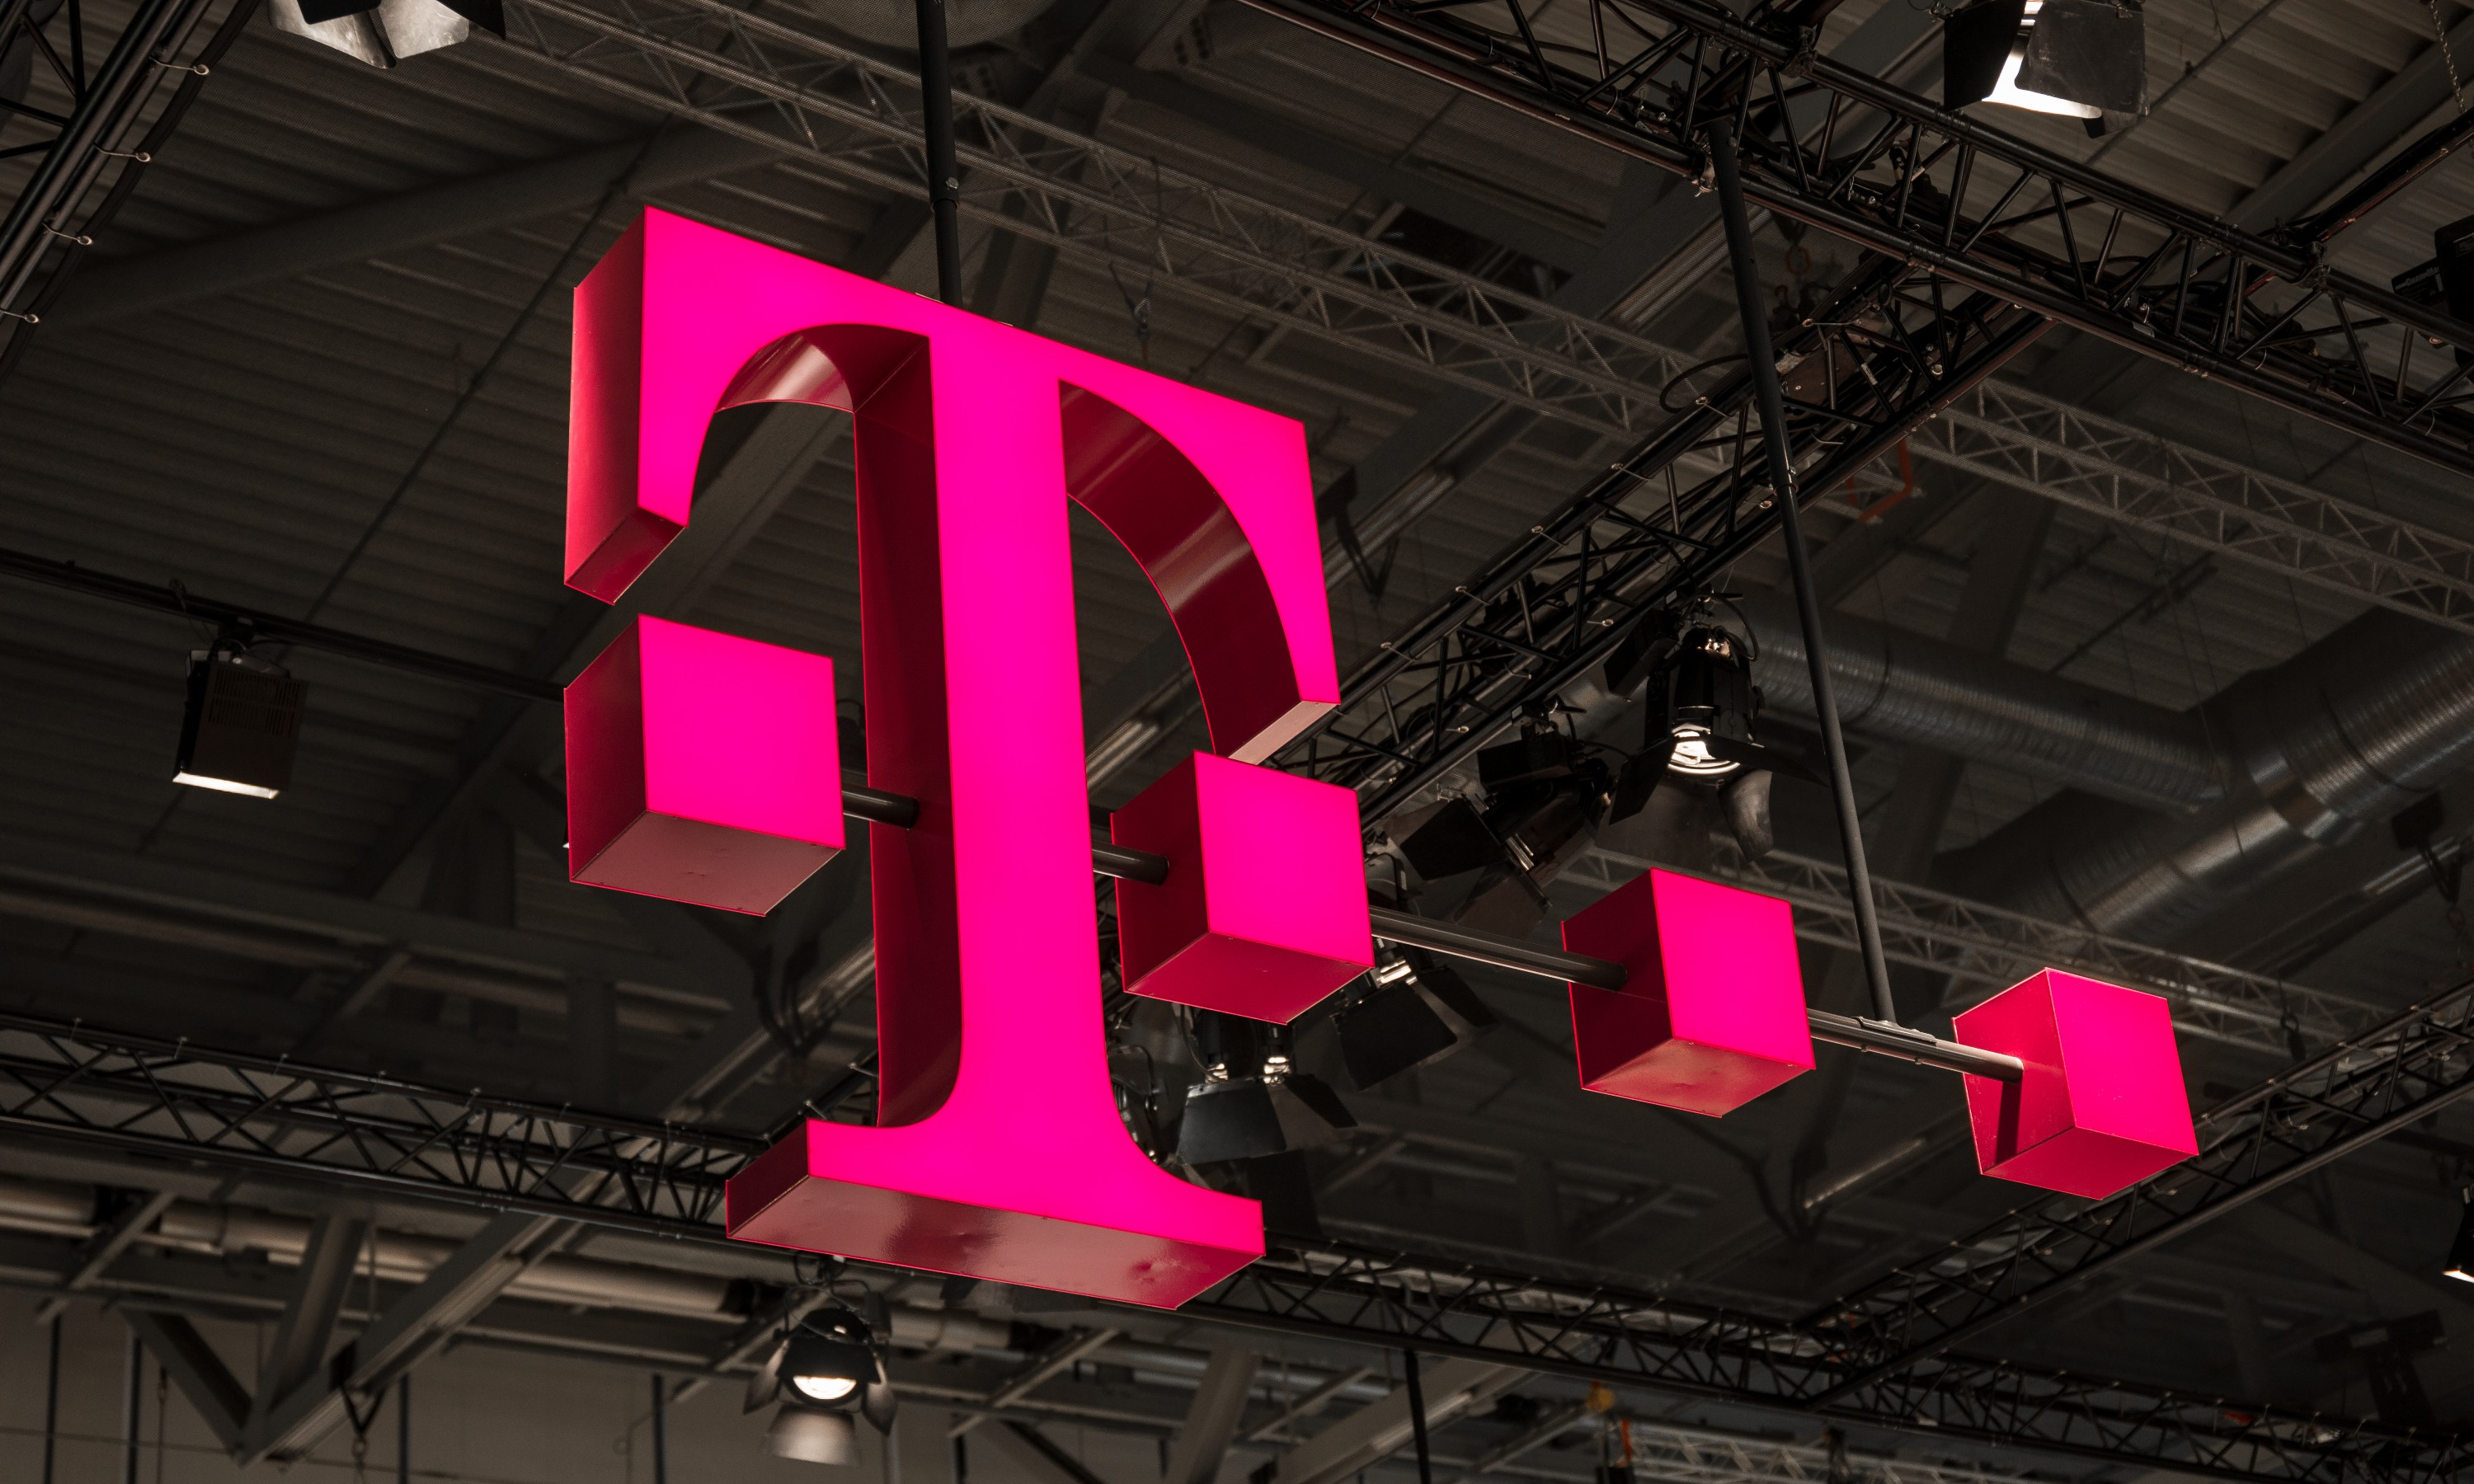 Hackers Stole Personal Data of 2 Million T-Mobile Customers - VICE